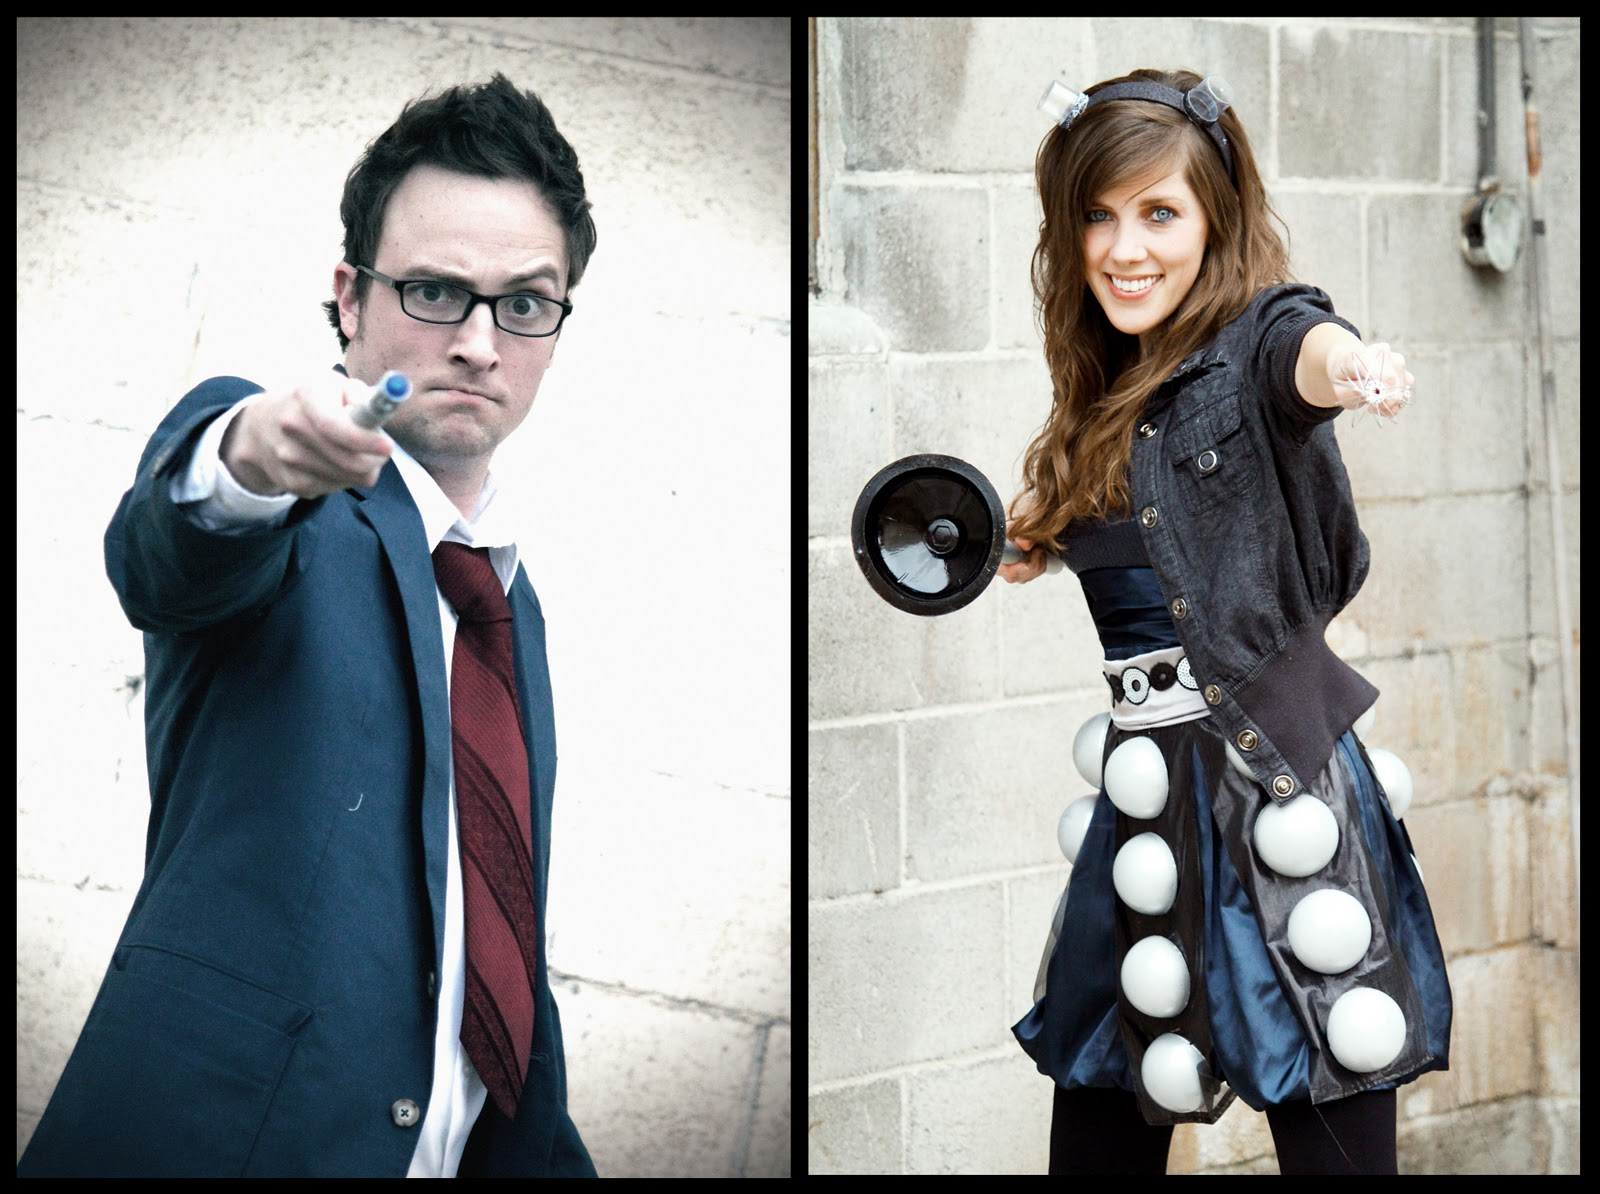 spooky pooky creations: the doctor and the dalek take on disney